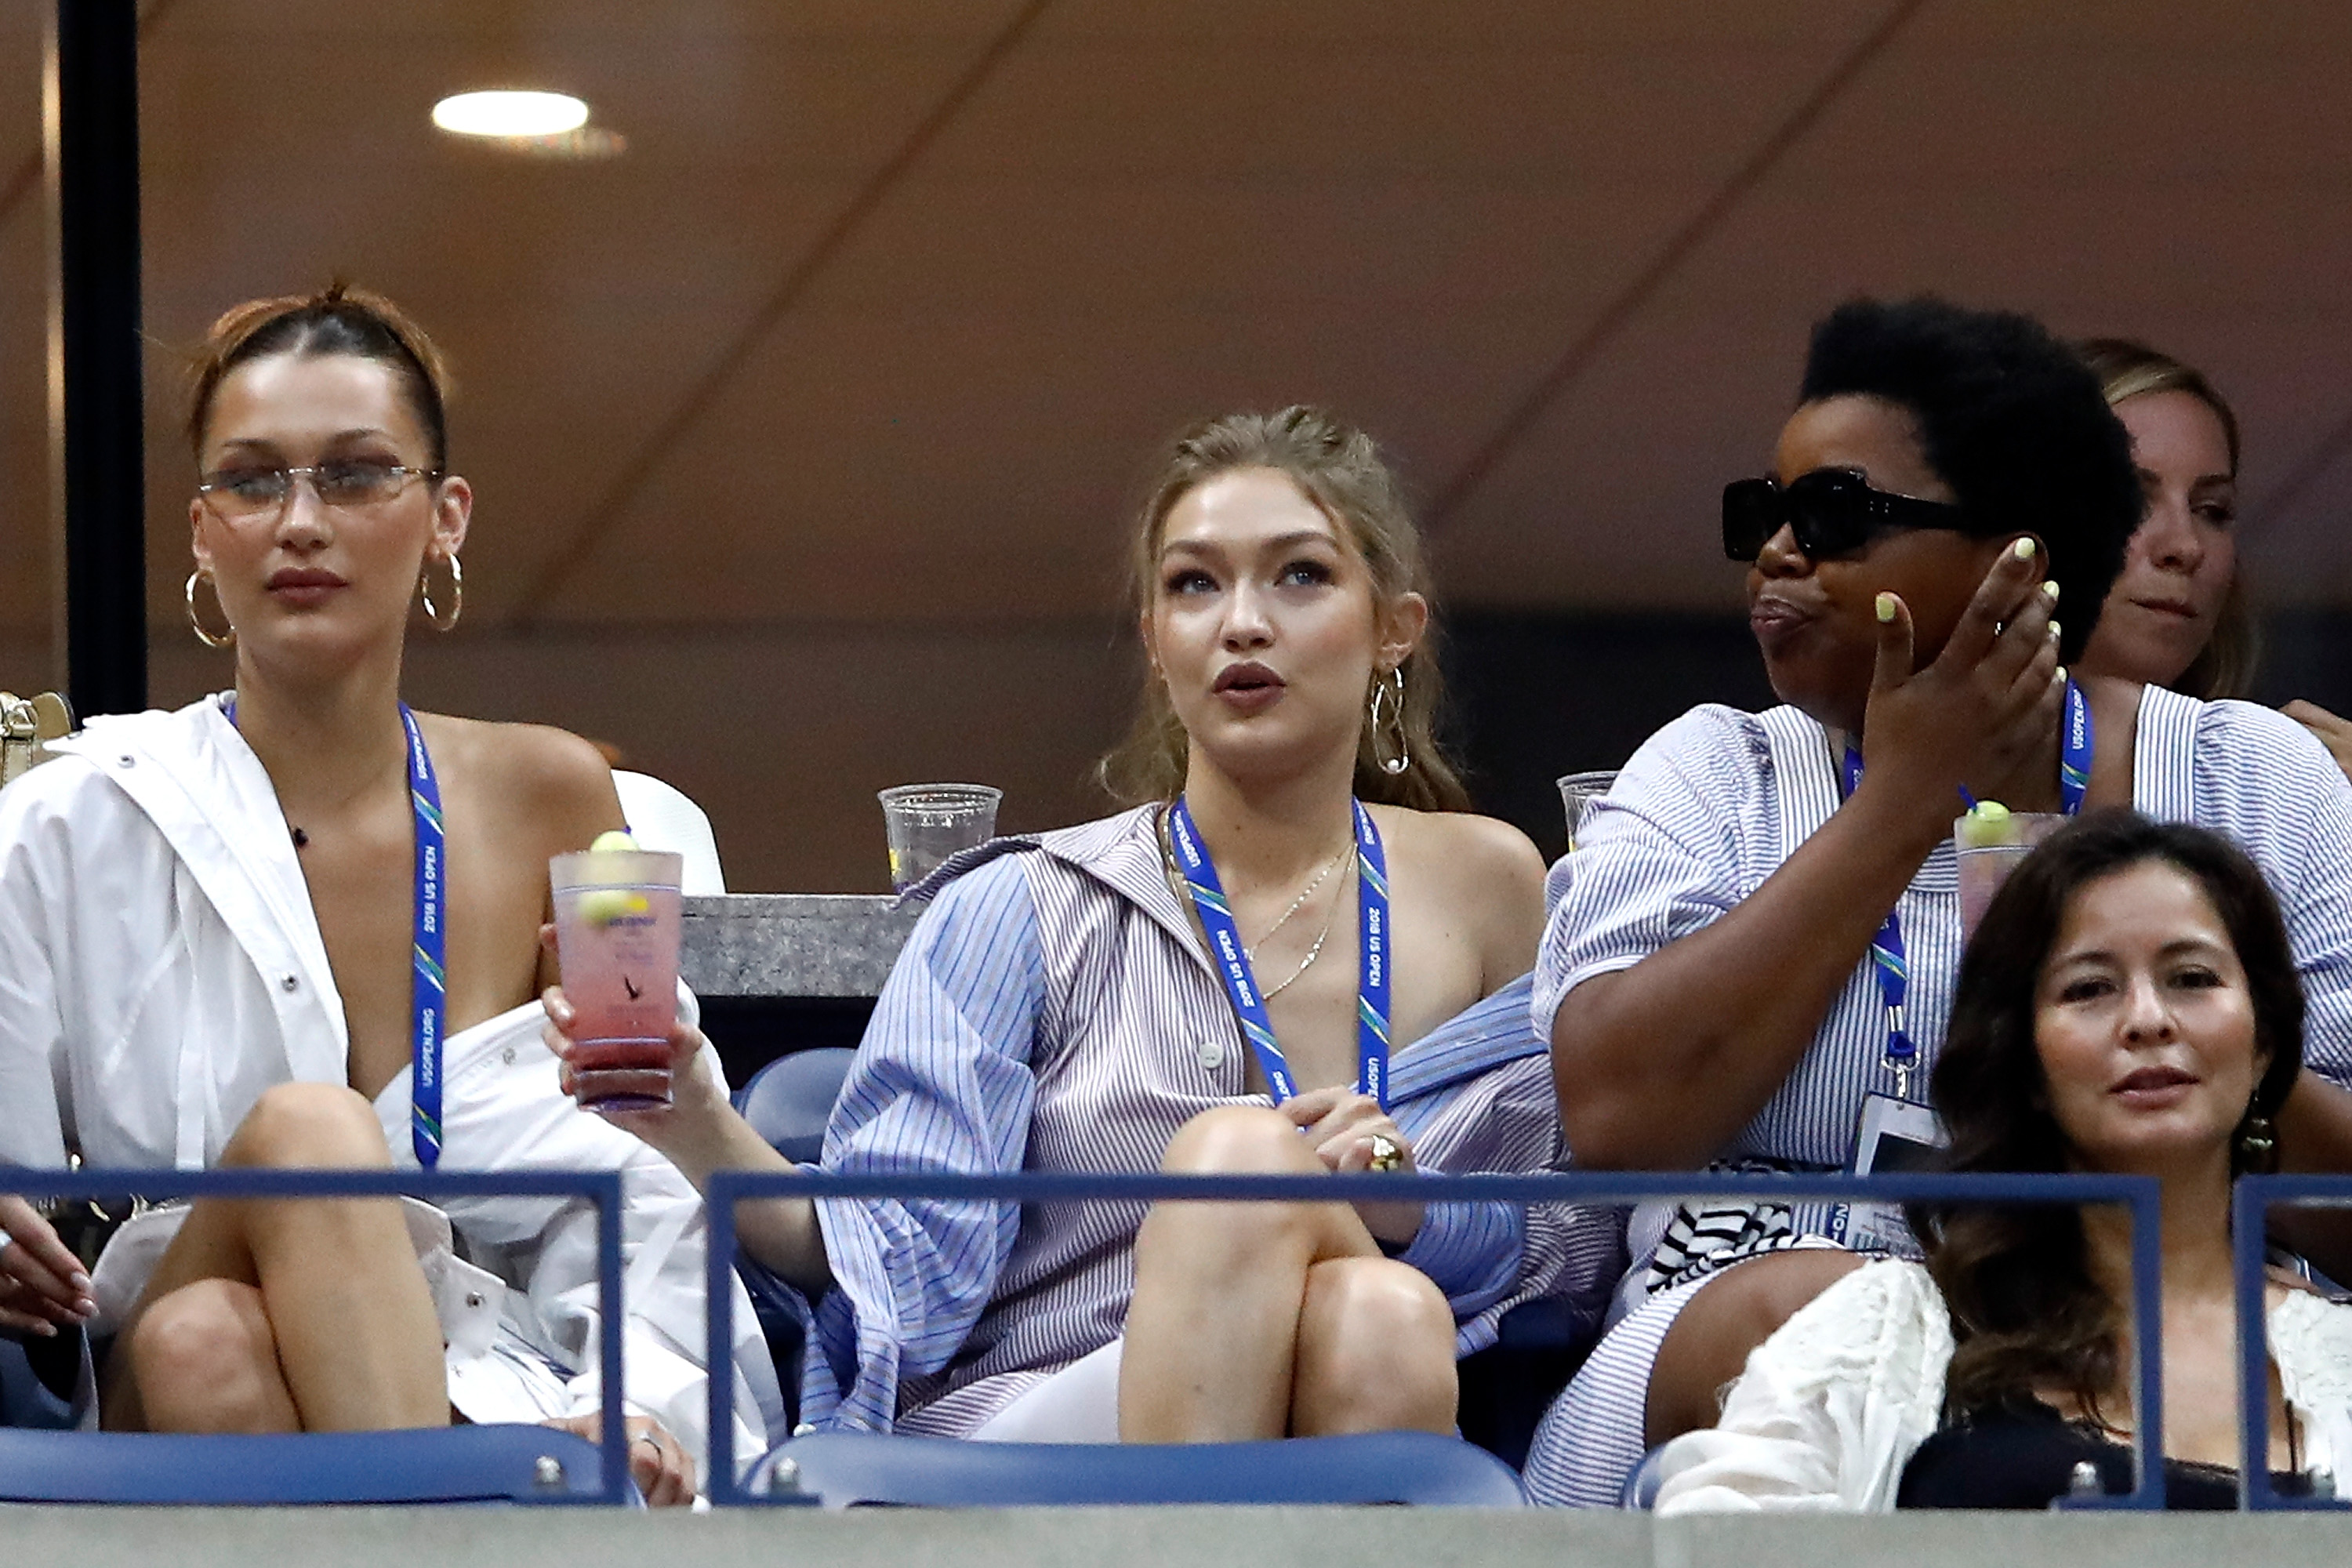 NEW YORK, NY - SEPTEMBER 04: Gigi Hadid and Bella Hadid watch on during the women's singles quarter-final match between Serena Williams of The United States and Karolina Pliskova of Czech Republic on Day Nine of the 2018 US Open at the USTA Billie Jean King National Tennis Center on September 4, 2018 in the Flushing neighborhood of the Queens borough of New York City. (Photo by Julian Finney/Getty Images)